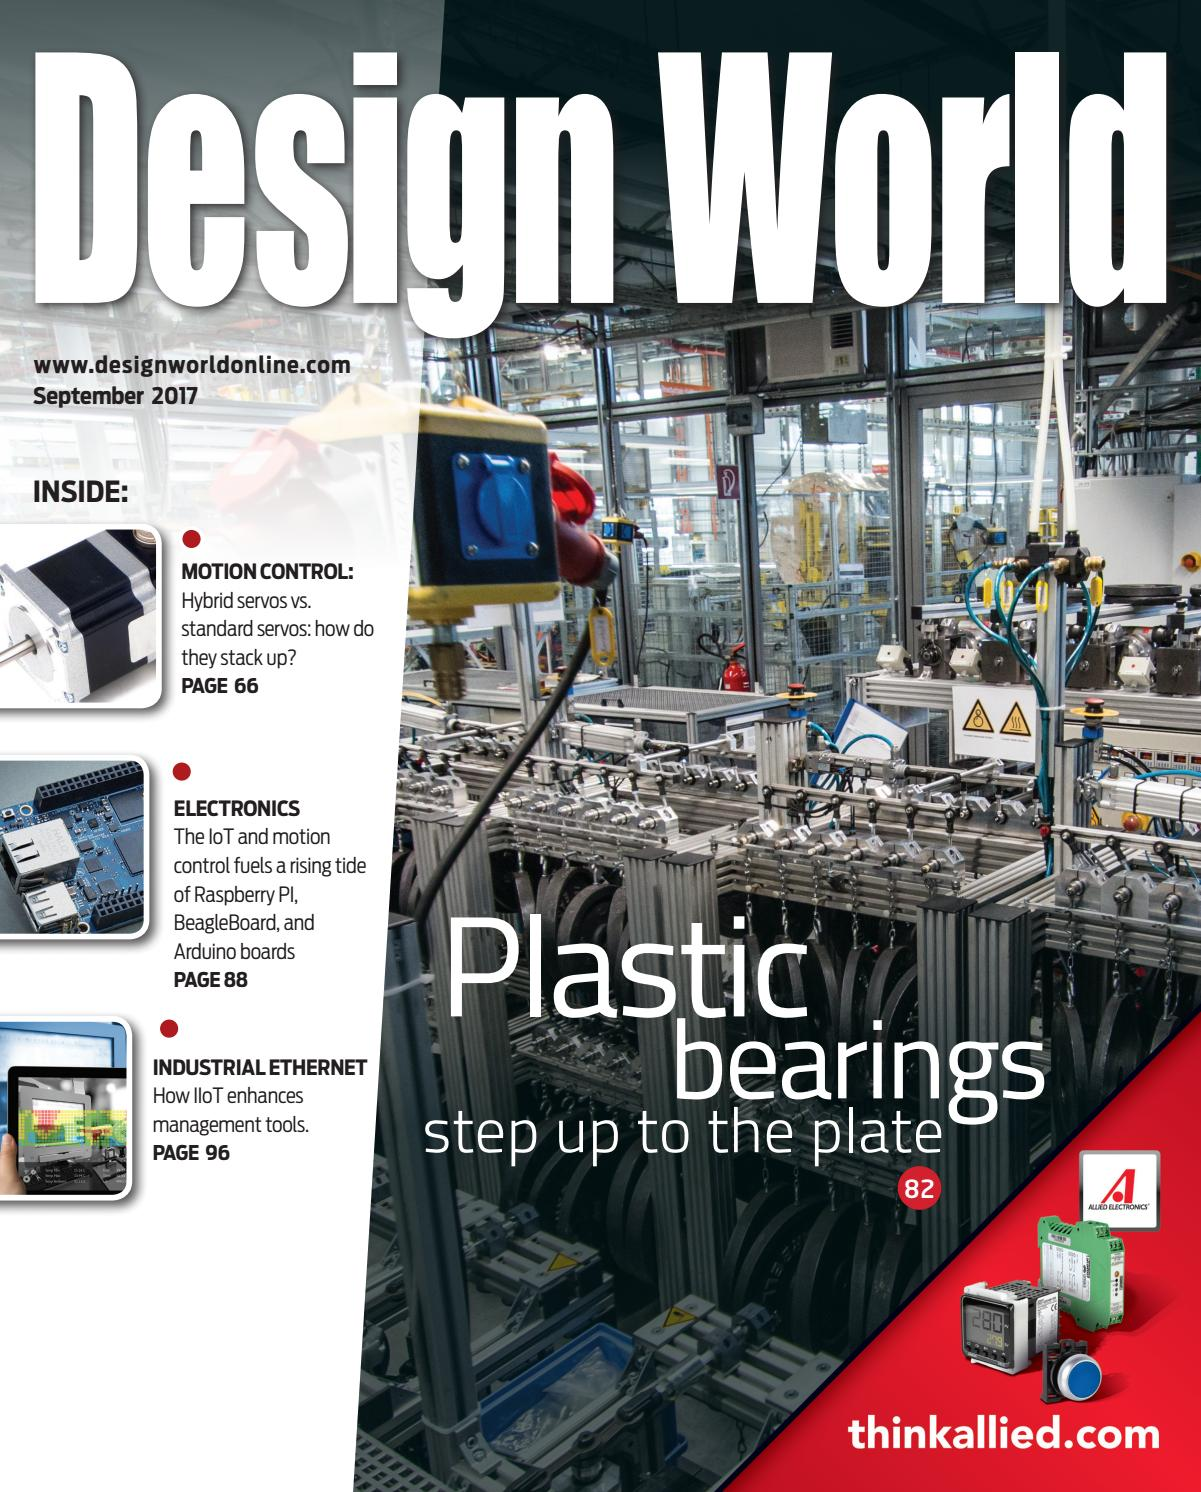 Design World September 2017 By Wtwh Media Llc Issuu Dc Motor Reverse And Forward Through Relay Plc Wiring Concept